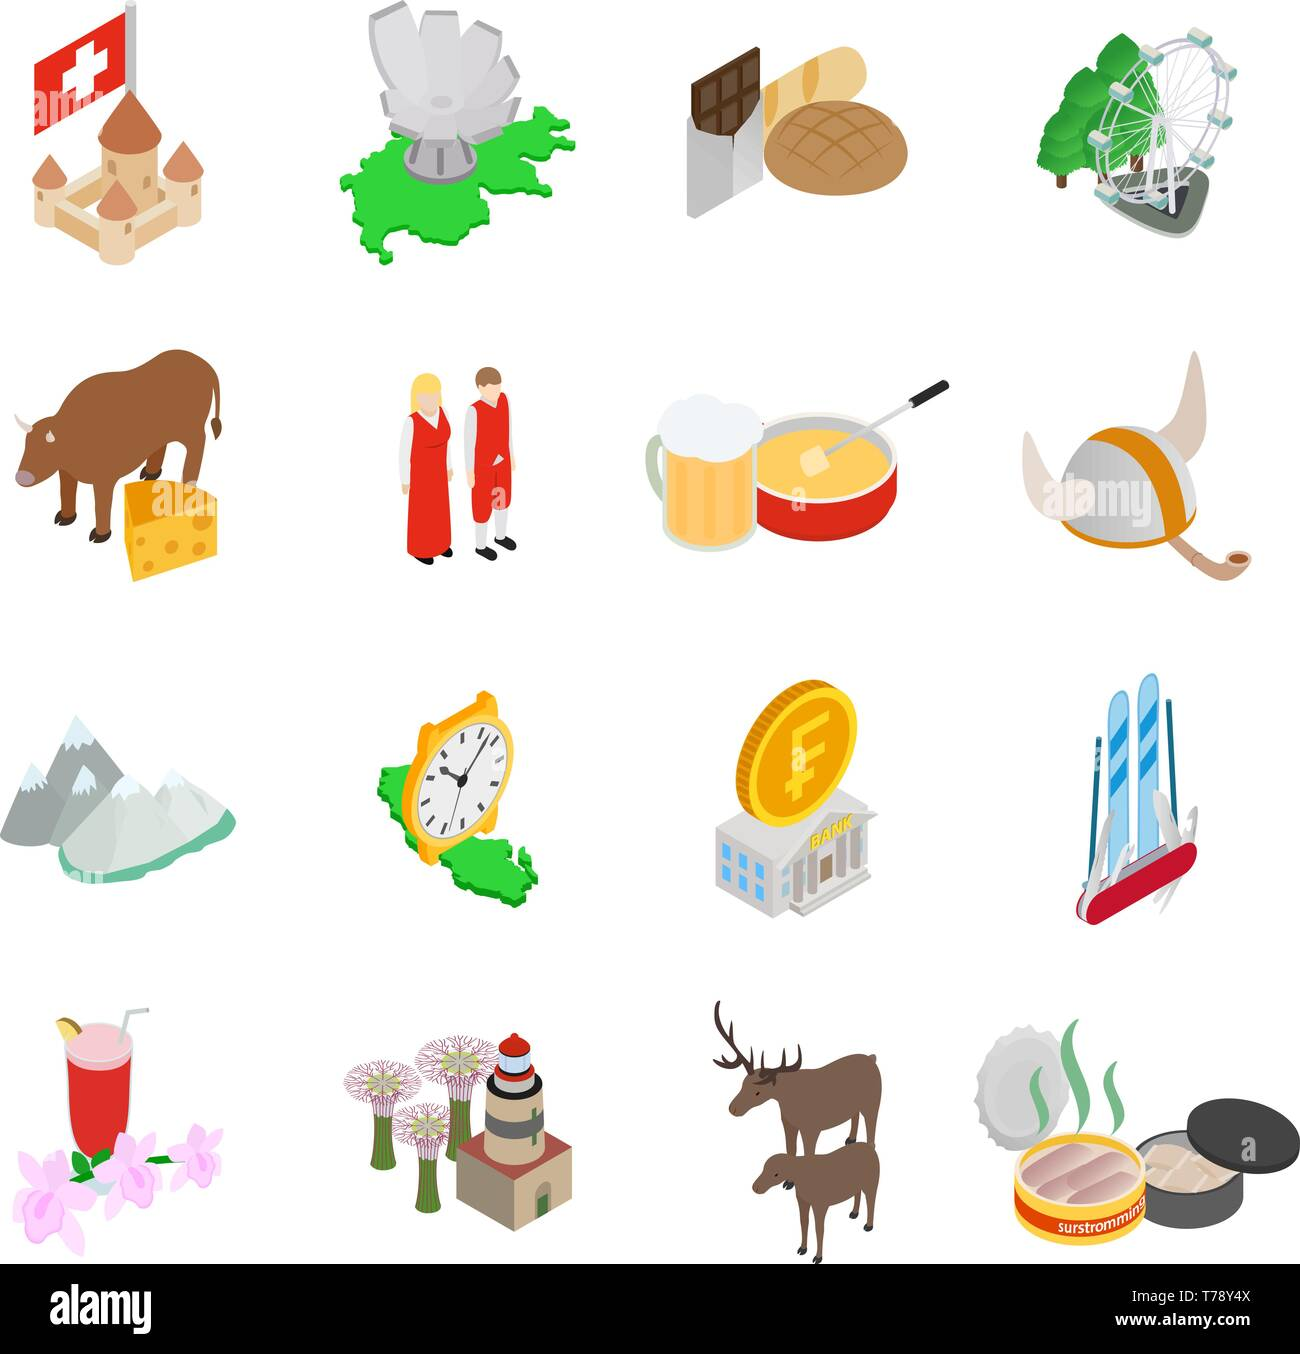 Baltic area icons set, isometric style - Stock Vector